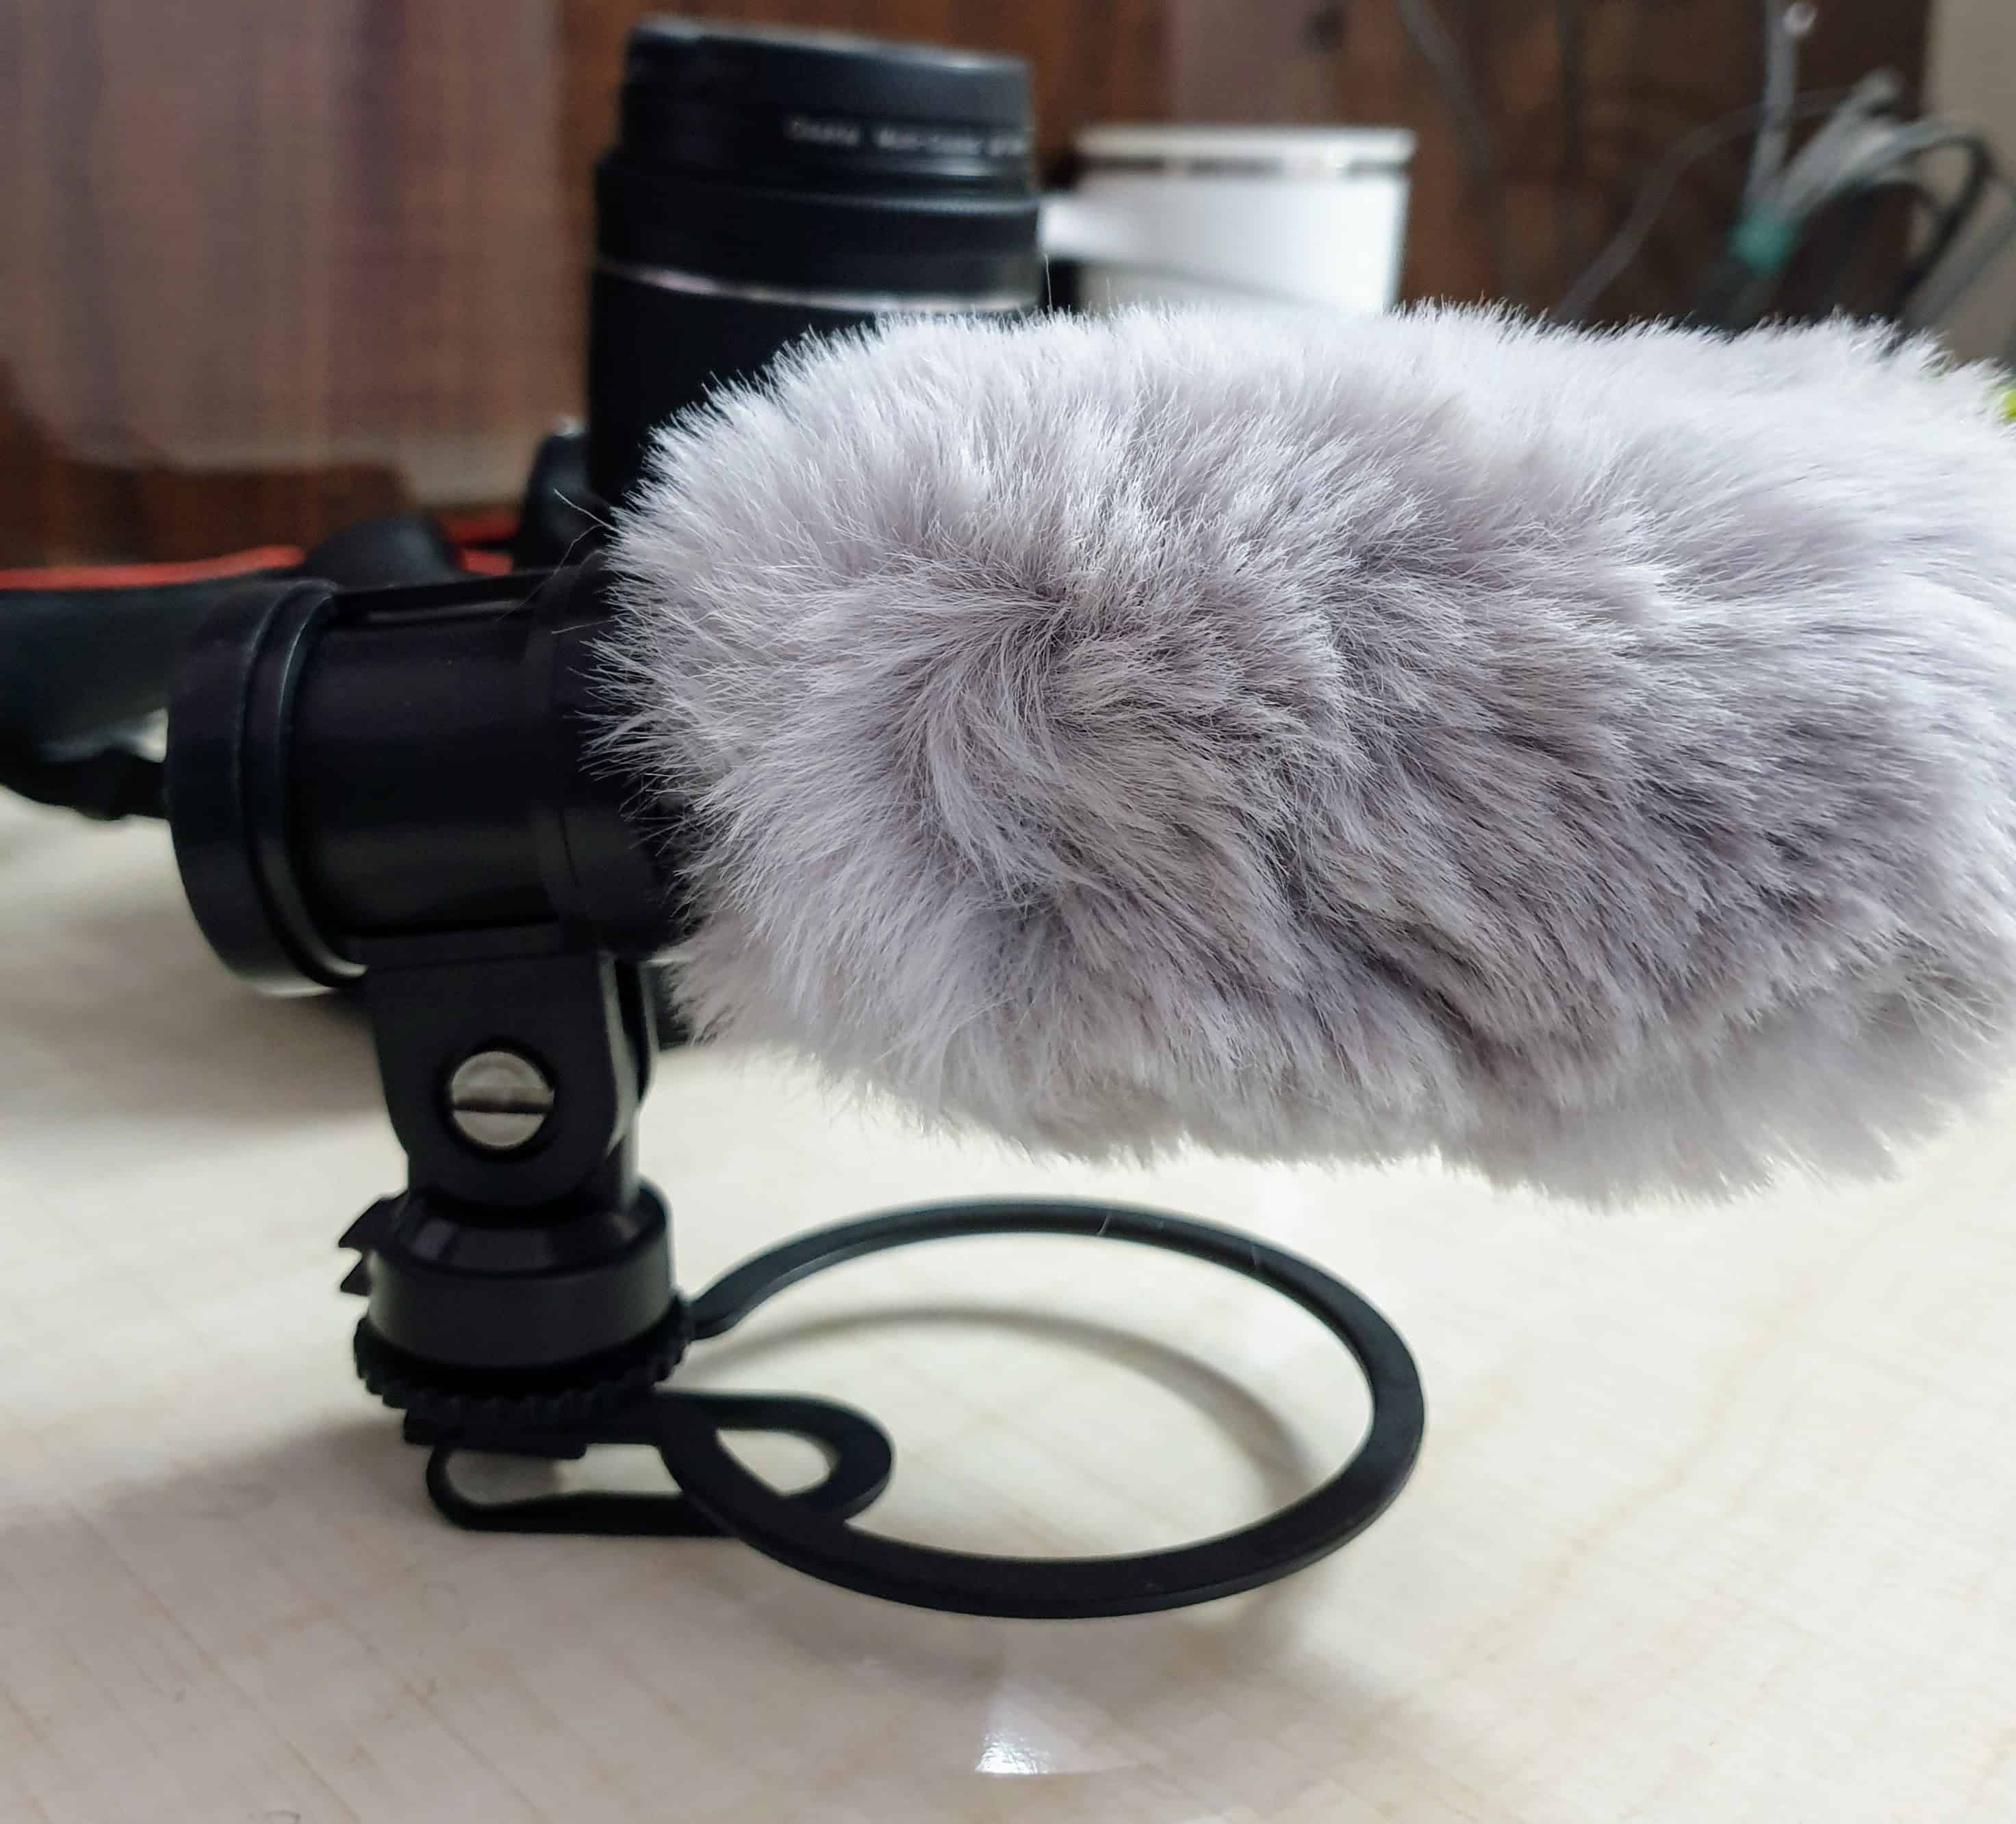 AVerMedia Live Streamer MIC 133 Review - A Must-Have Accessory for Content Creators! - 2